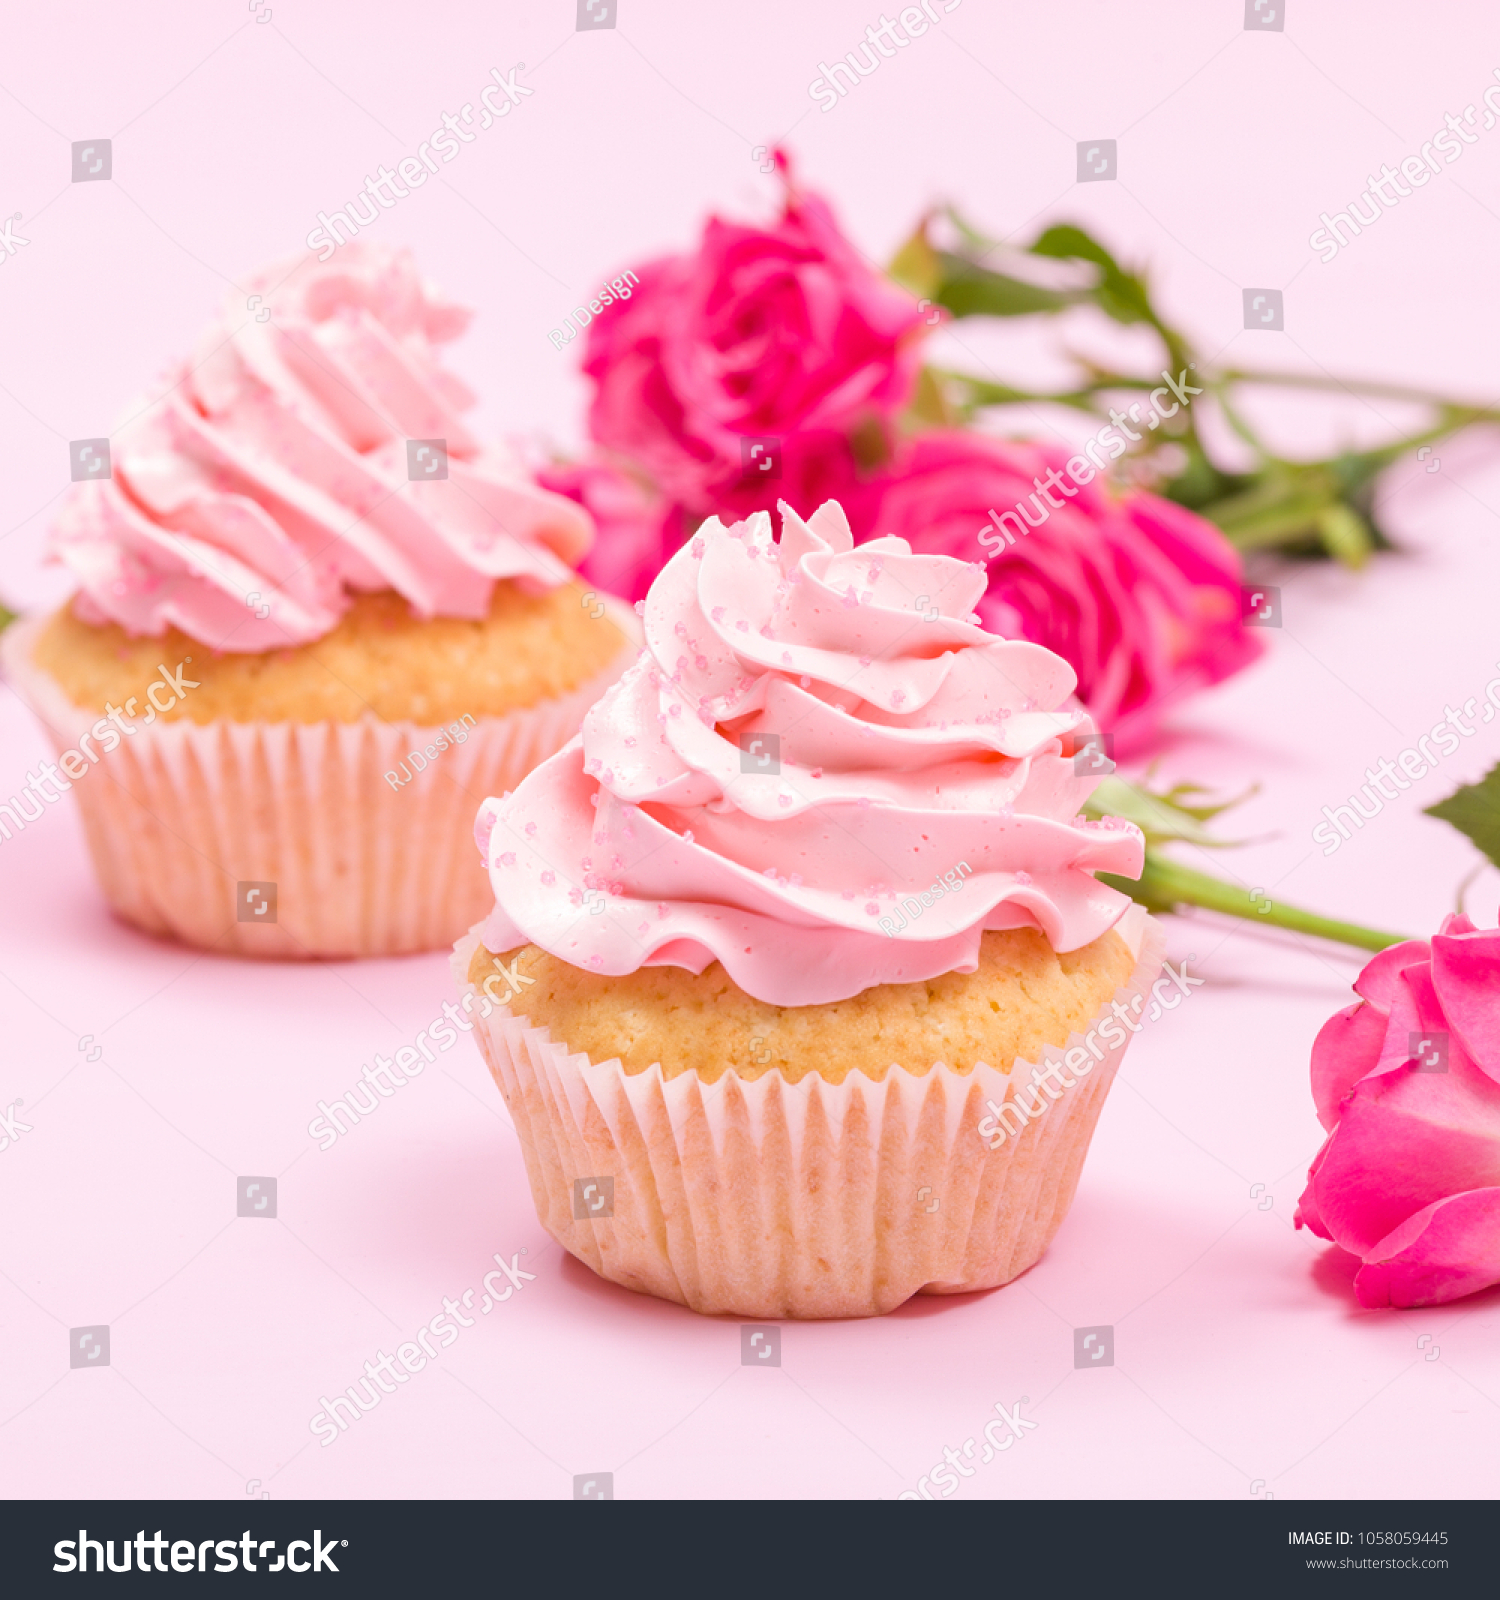 Décoration De Cupcake Cupcake Pink Cream Decoration Roses On Stock Photo Edit Now